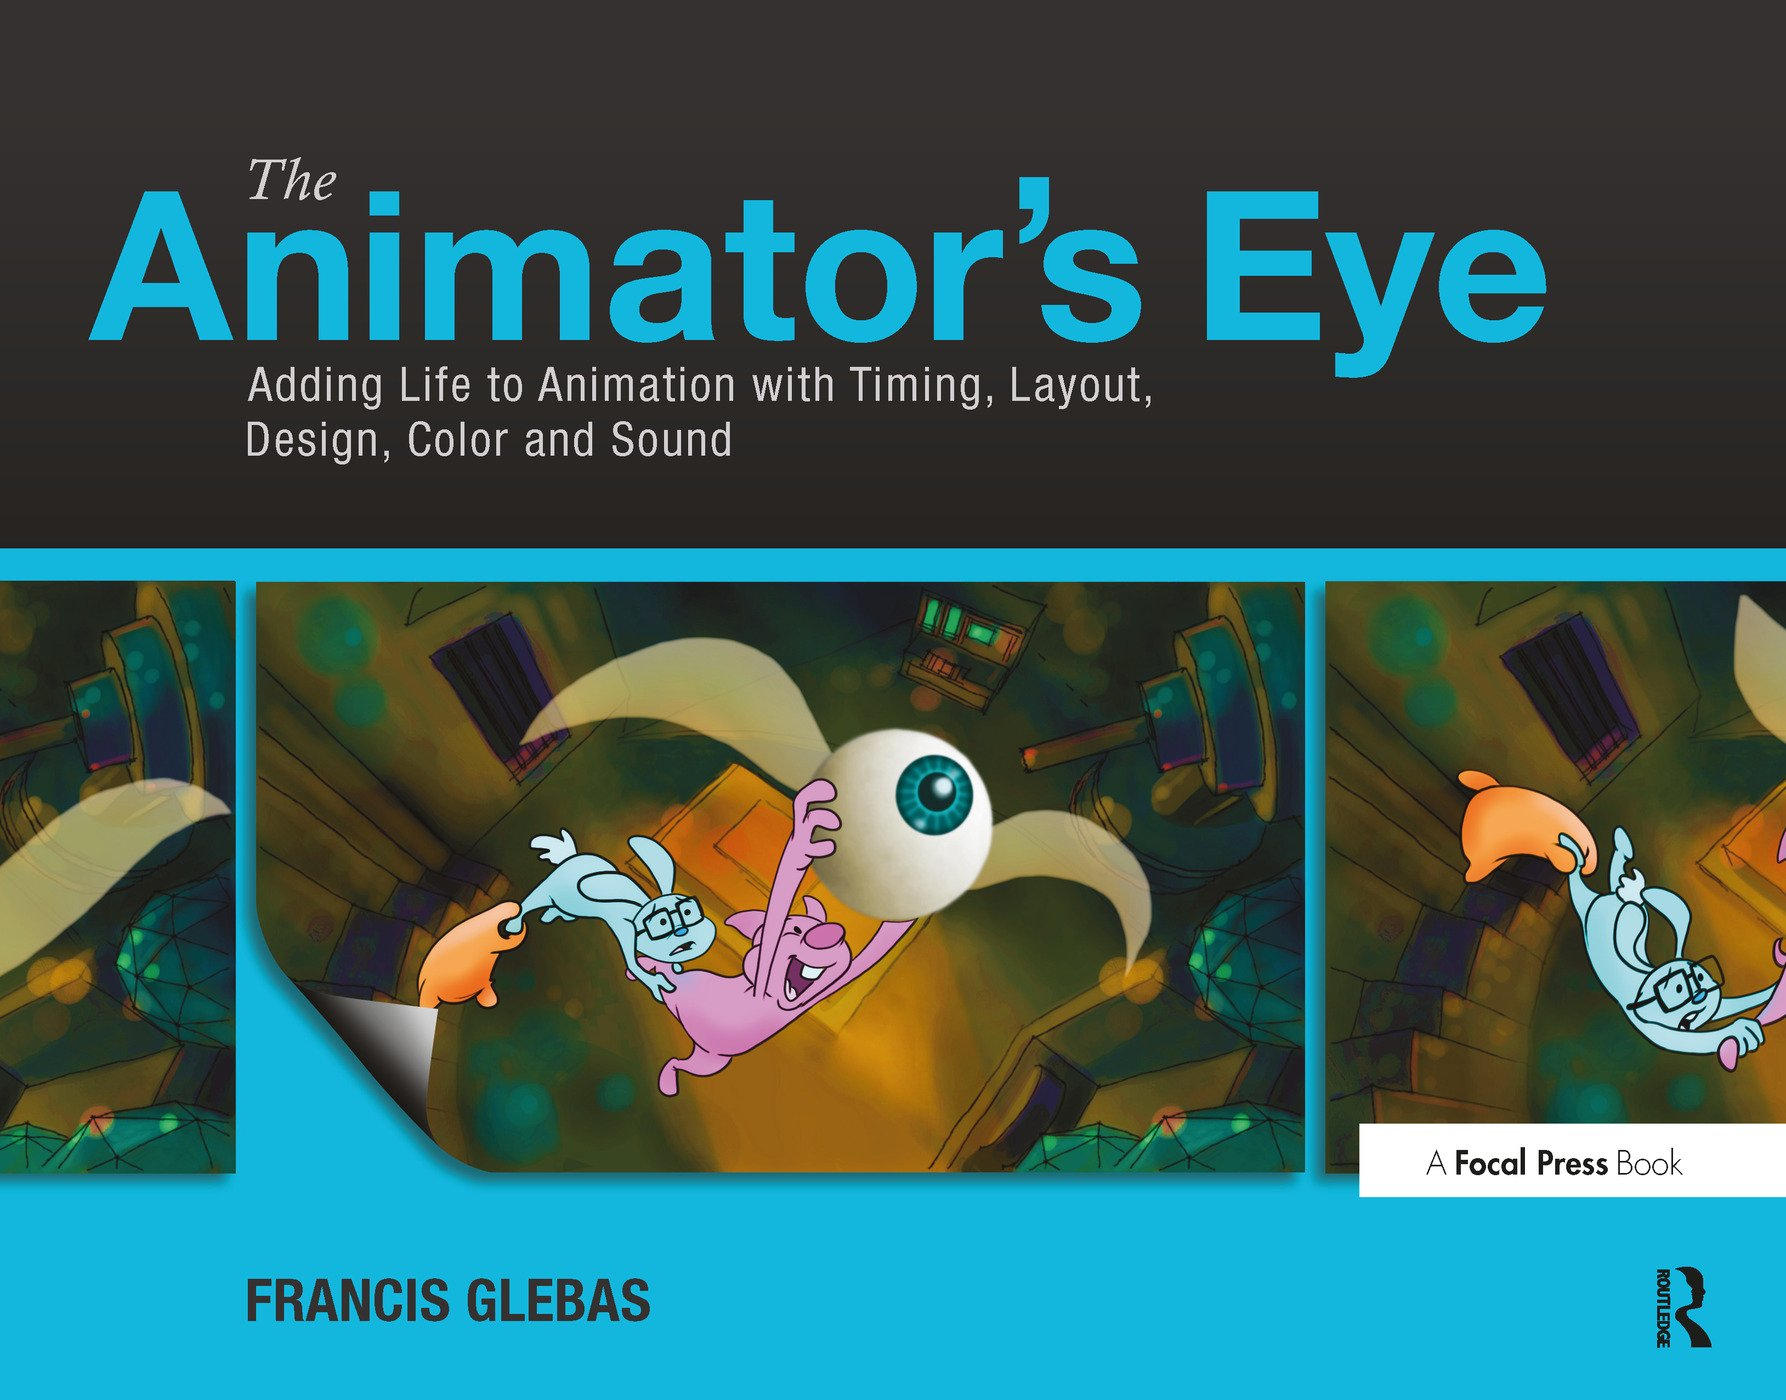 The Animator's Eye: Adding Life to Animation with Timing, Layout, Design, Color and Sound (Paperback) book cover